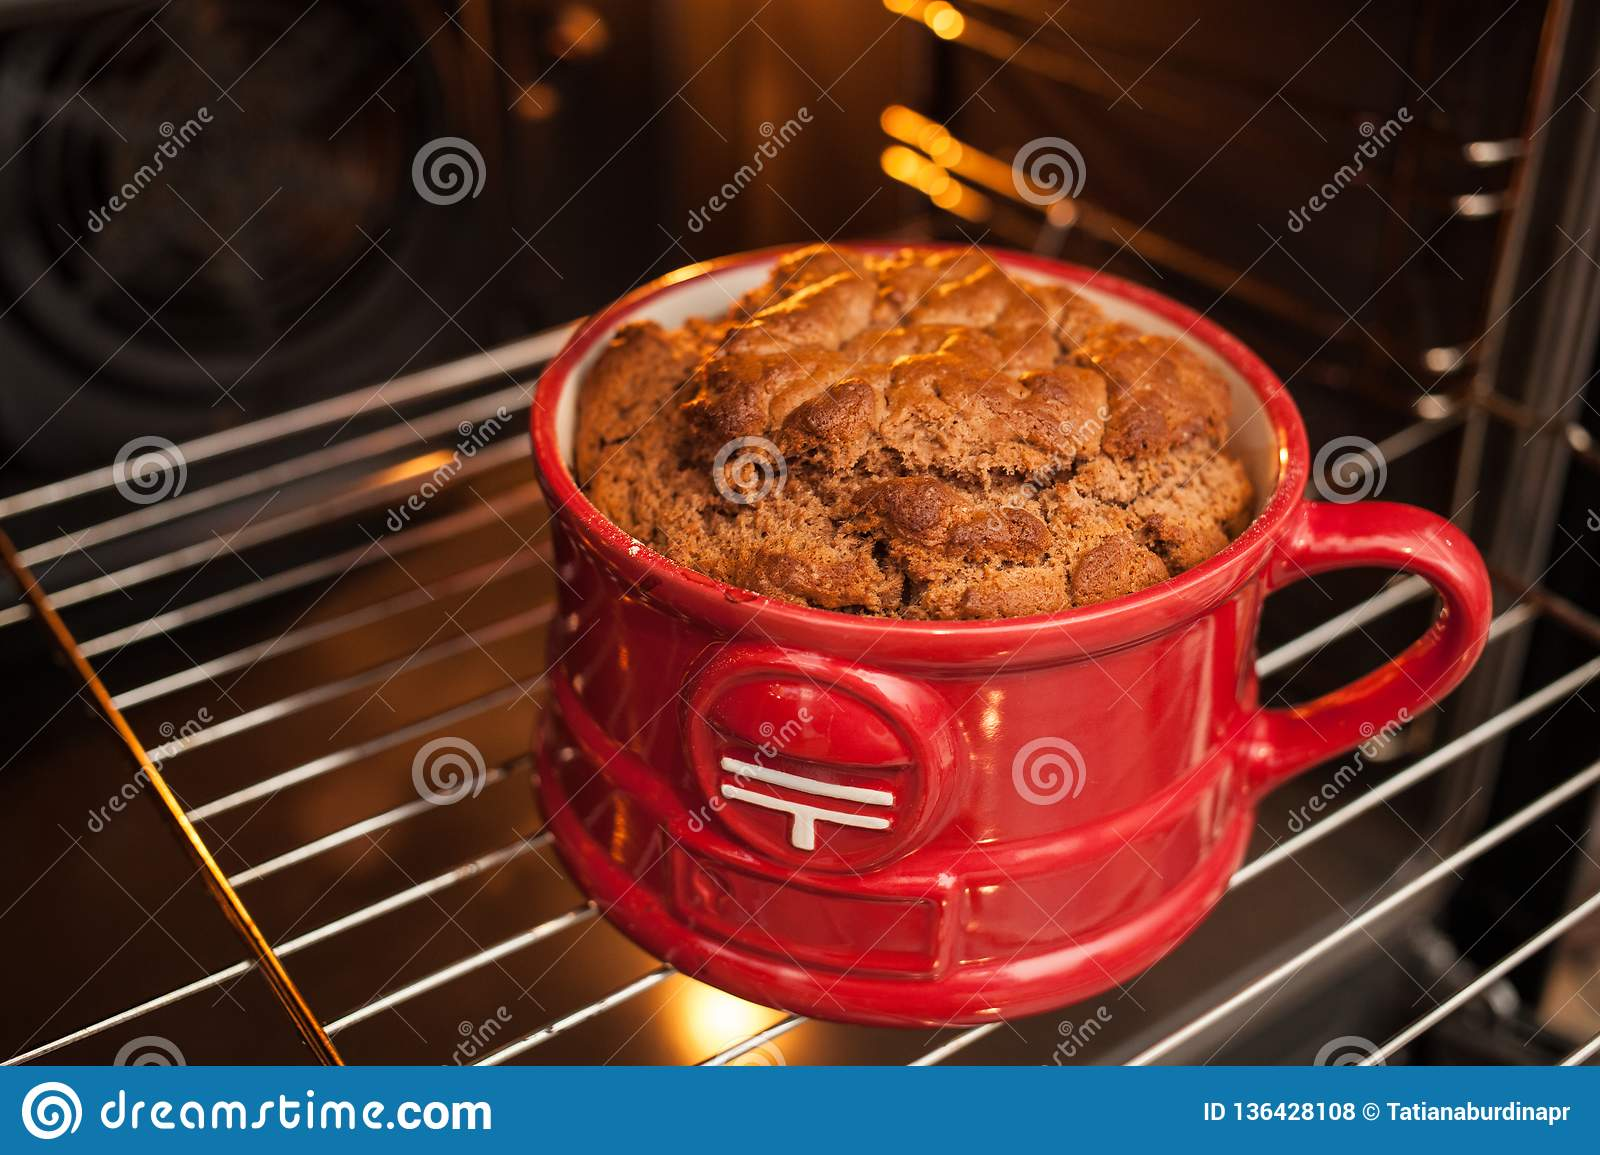 Close up a big lush ruddy mugcake in a red mug cooked in the oven. Cooking and cupcake recipes Realism